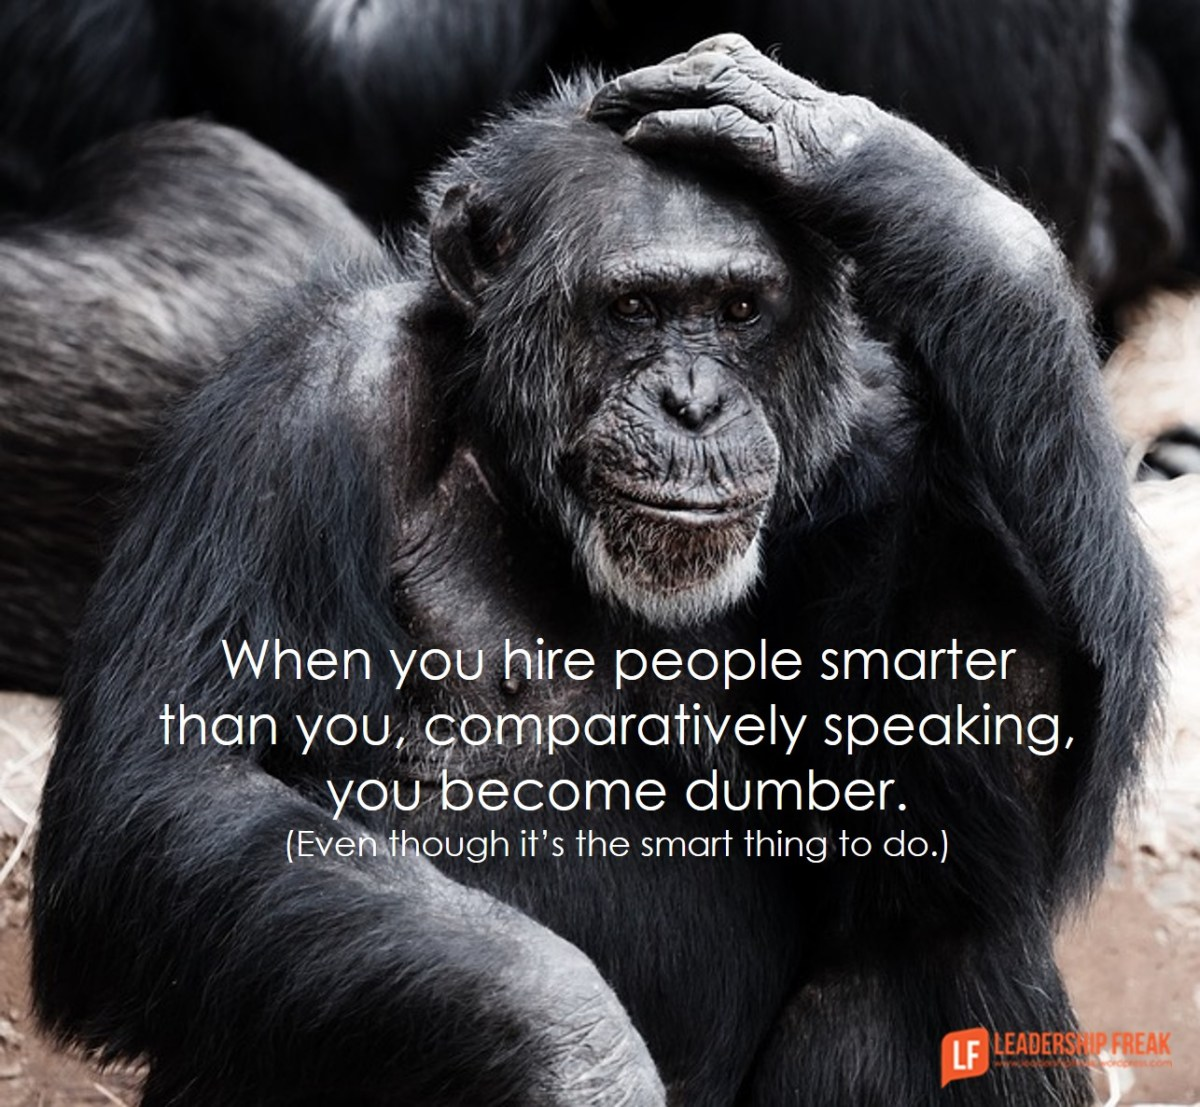 7 Smart Things To Do When Your Team Is Smarter Than You